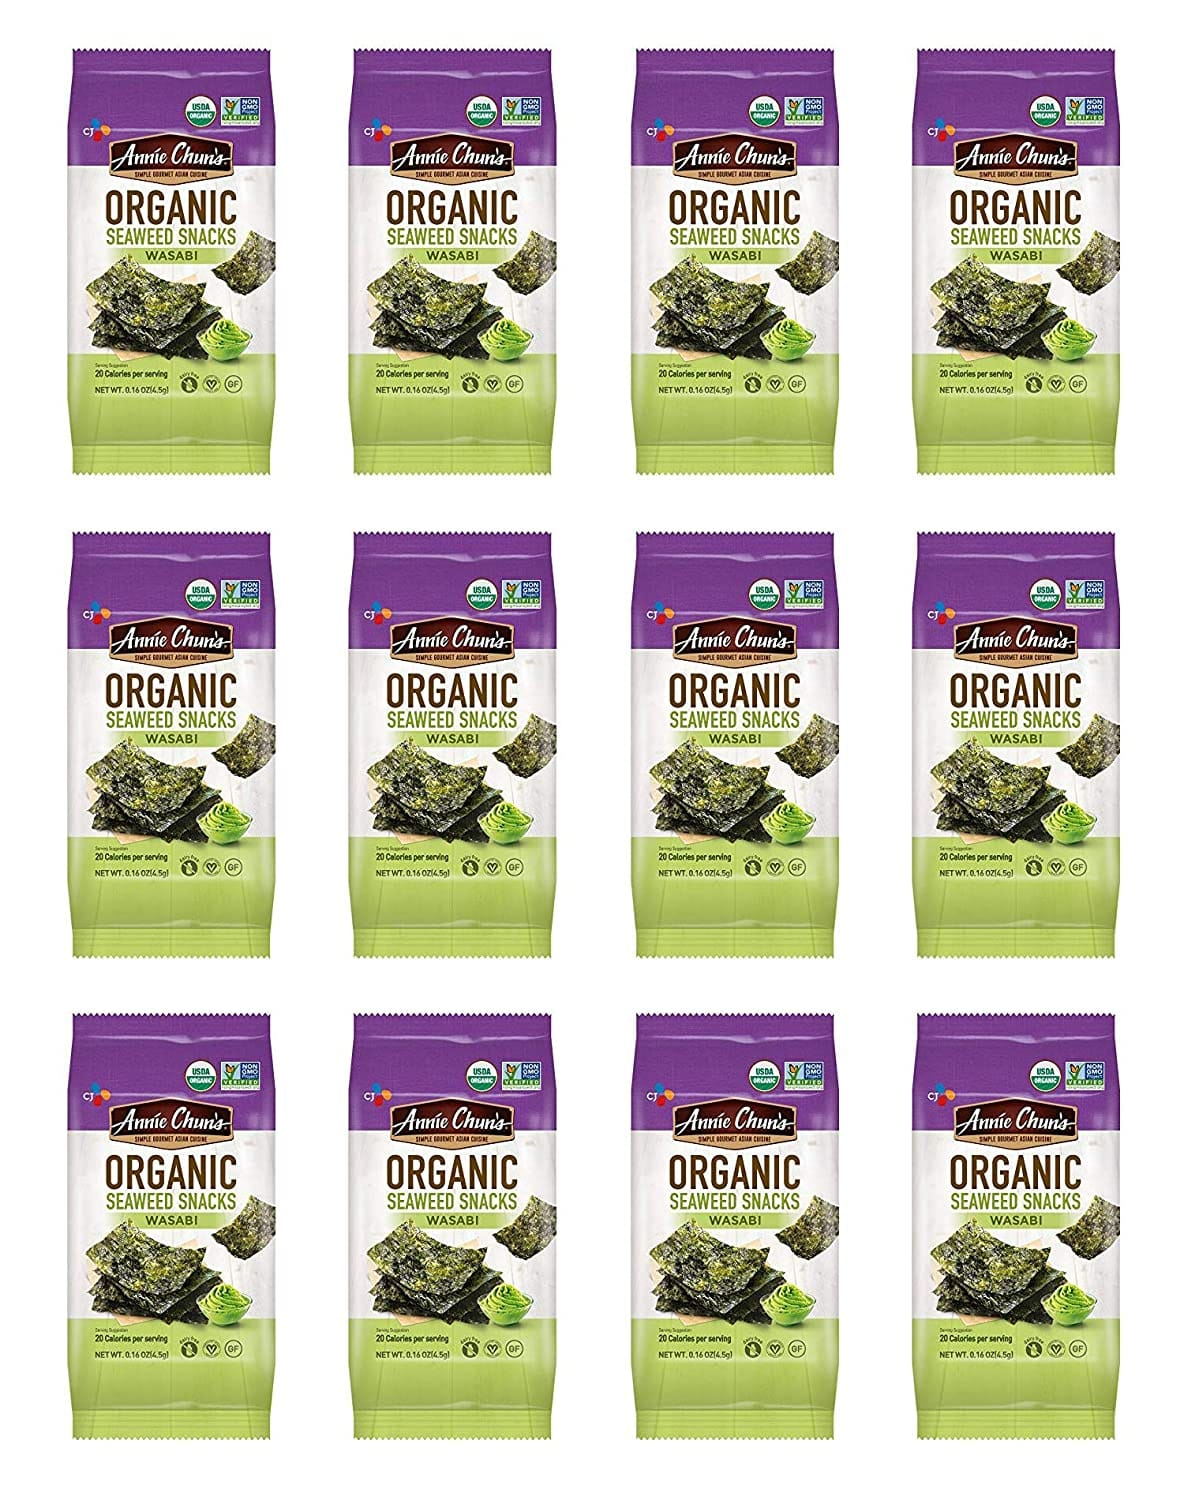 12-Count 0.16-Oz Annie Chun's Organic Seaweed (Wasabi) $5.22 w/ S&S + Free Shipping w/ Prime or on orders $25+.